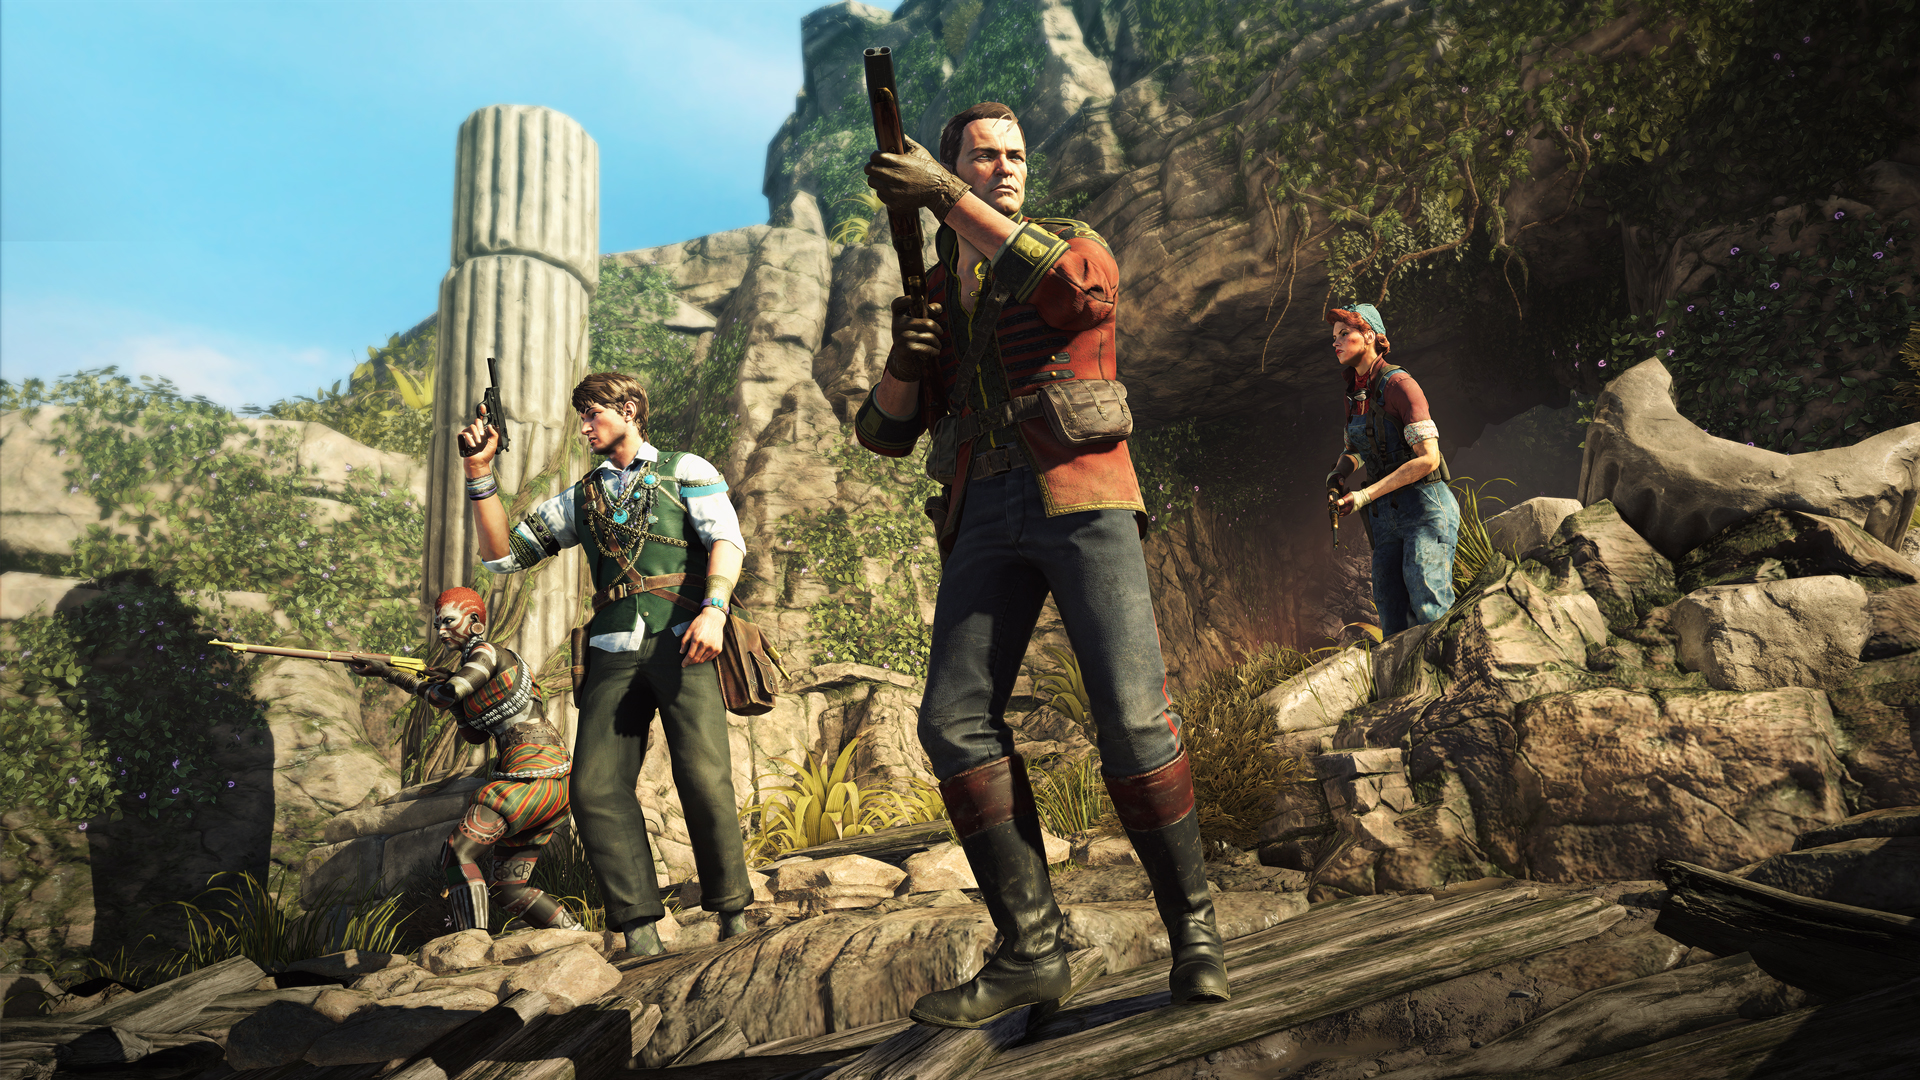 Find the best laptop for Strange Brigade